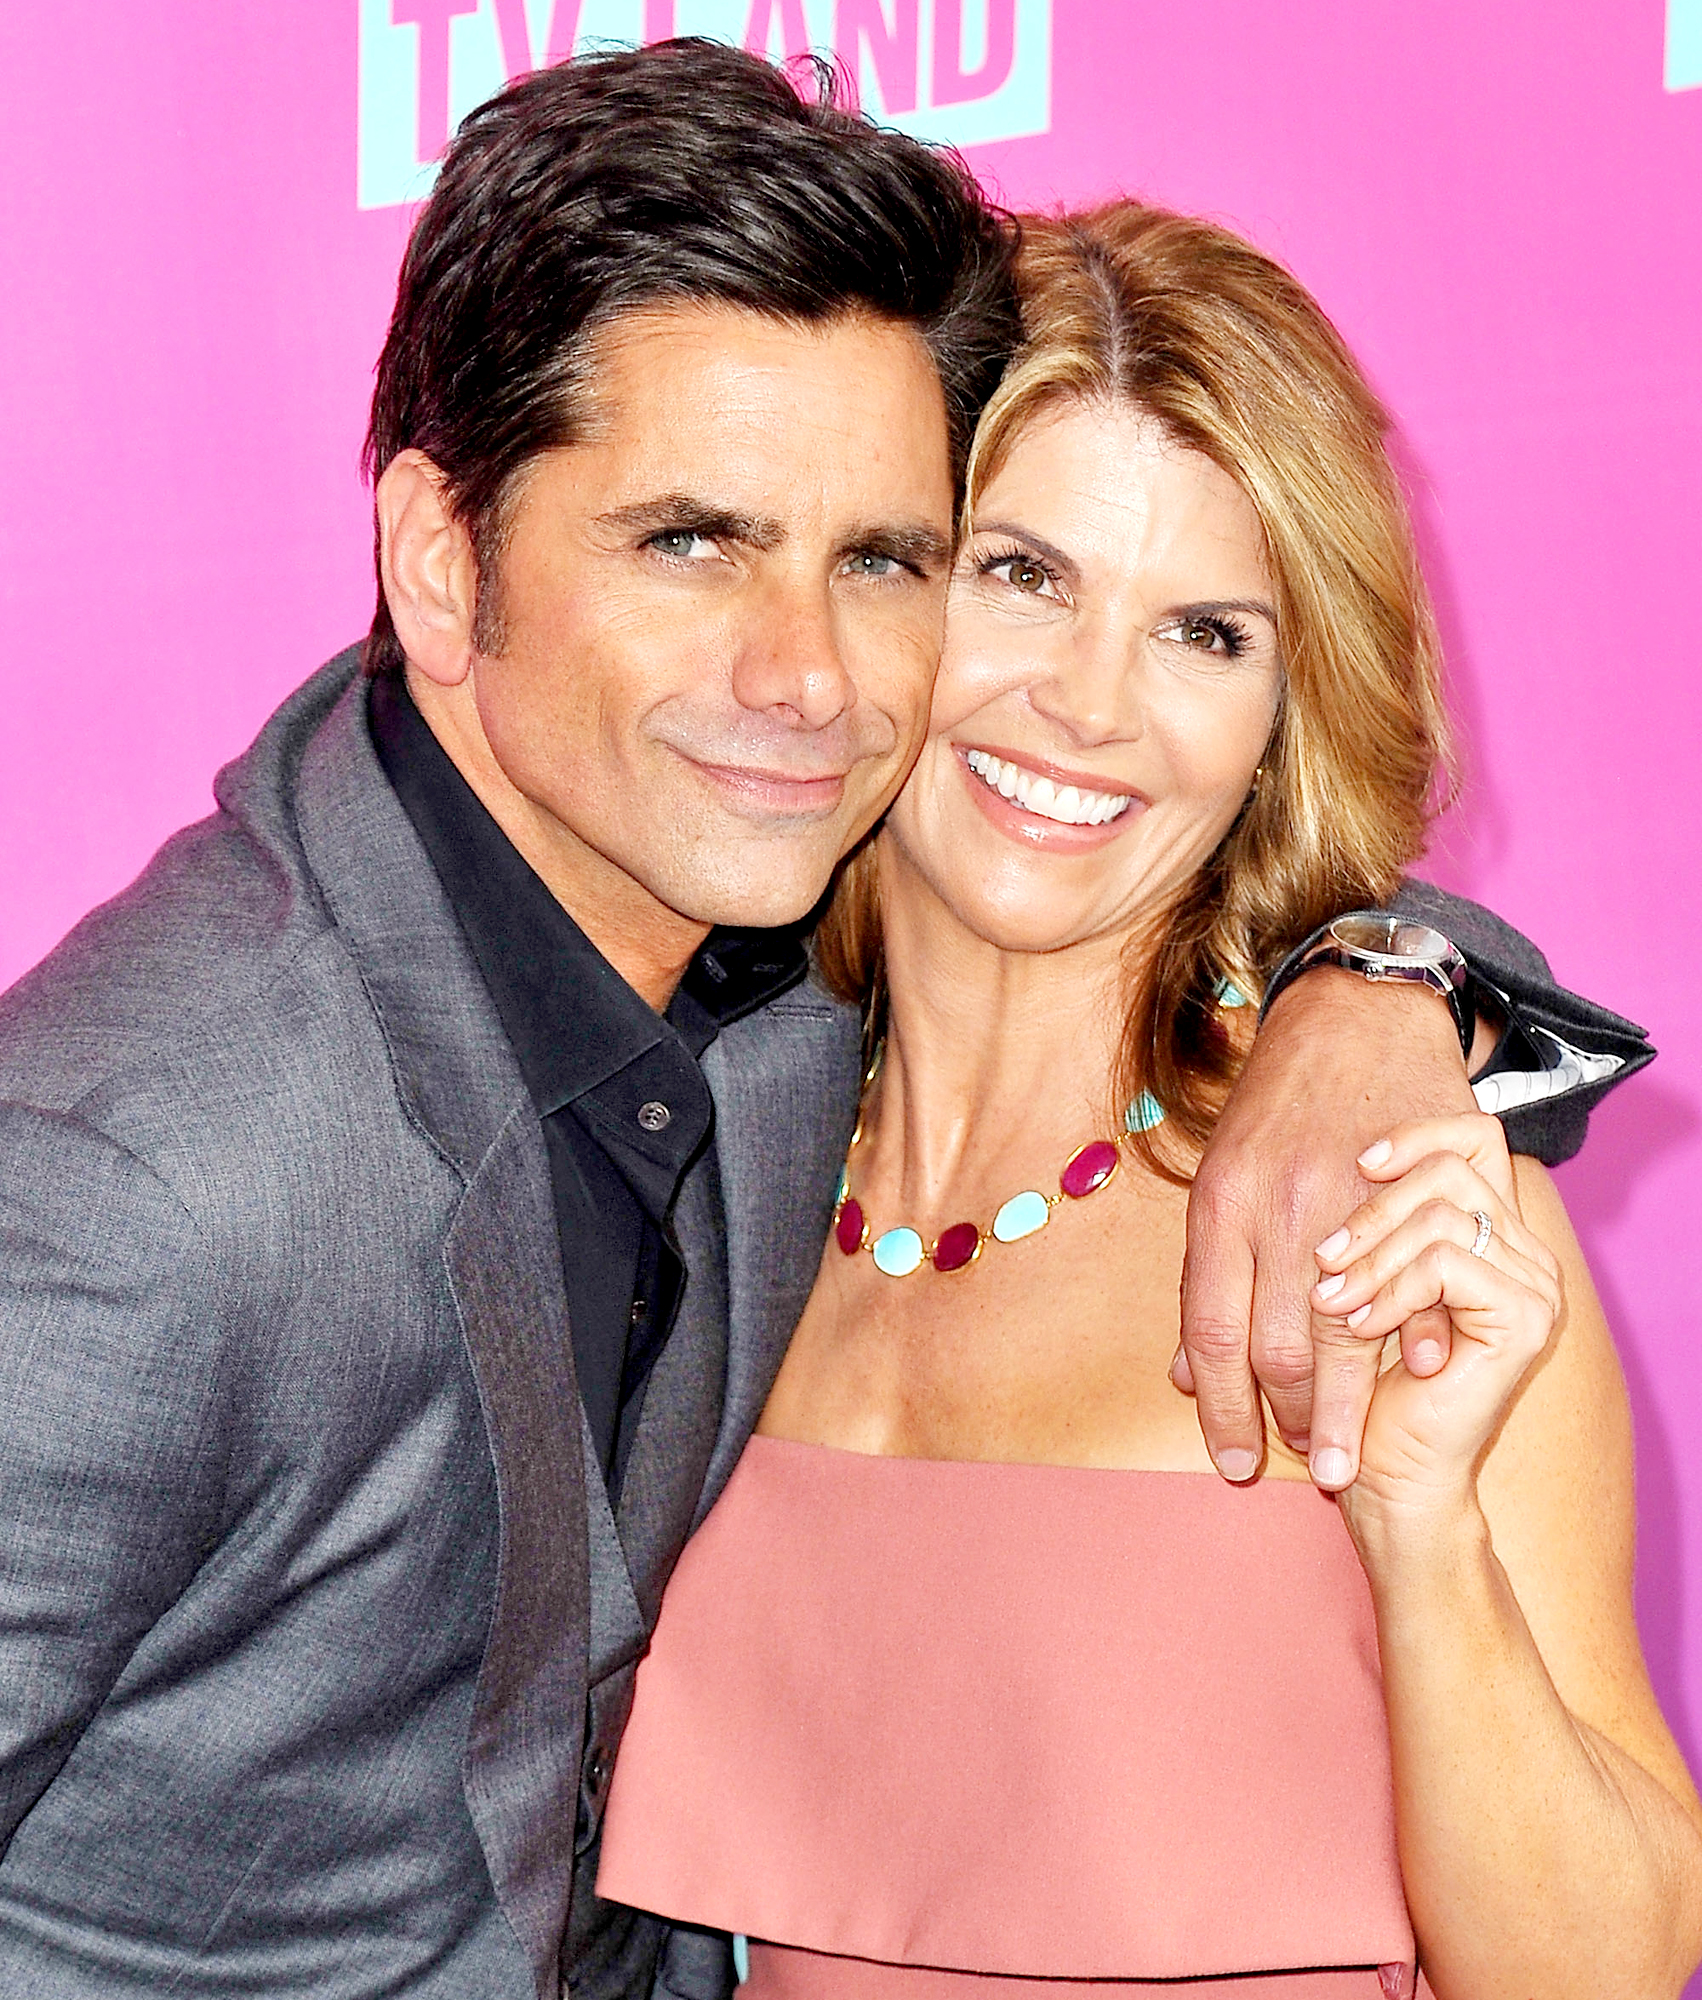 John Stamos Roasted for Including Lori Loughlin in 'Fuller House' Promo Photo: 'Y'all Gonna Be Visiting Aunt Becky in Jail?'